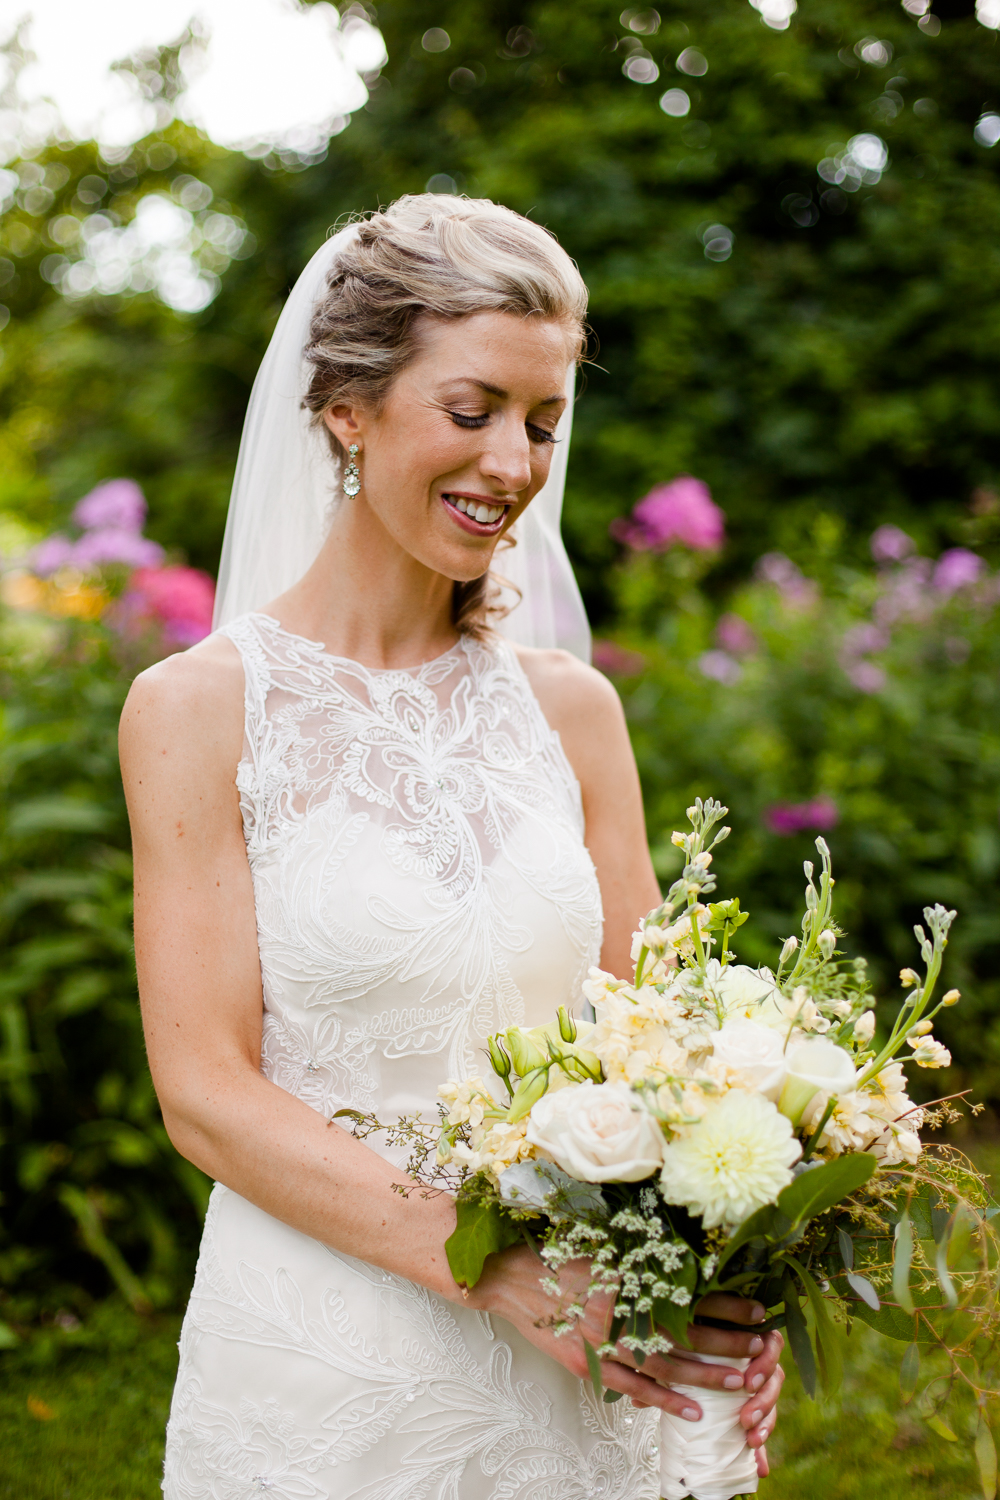 A bride gazes down at her flowers.